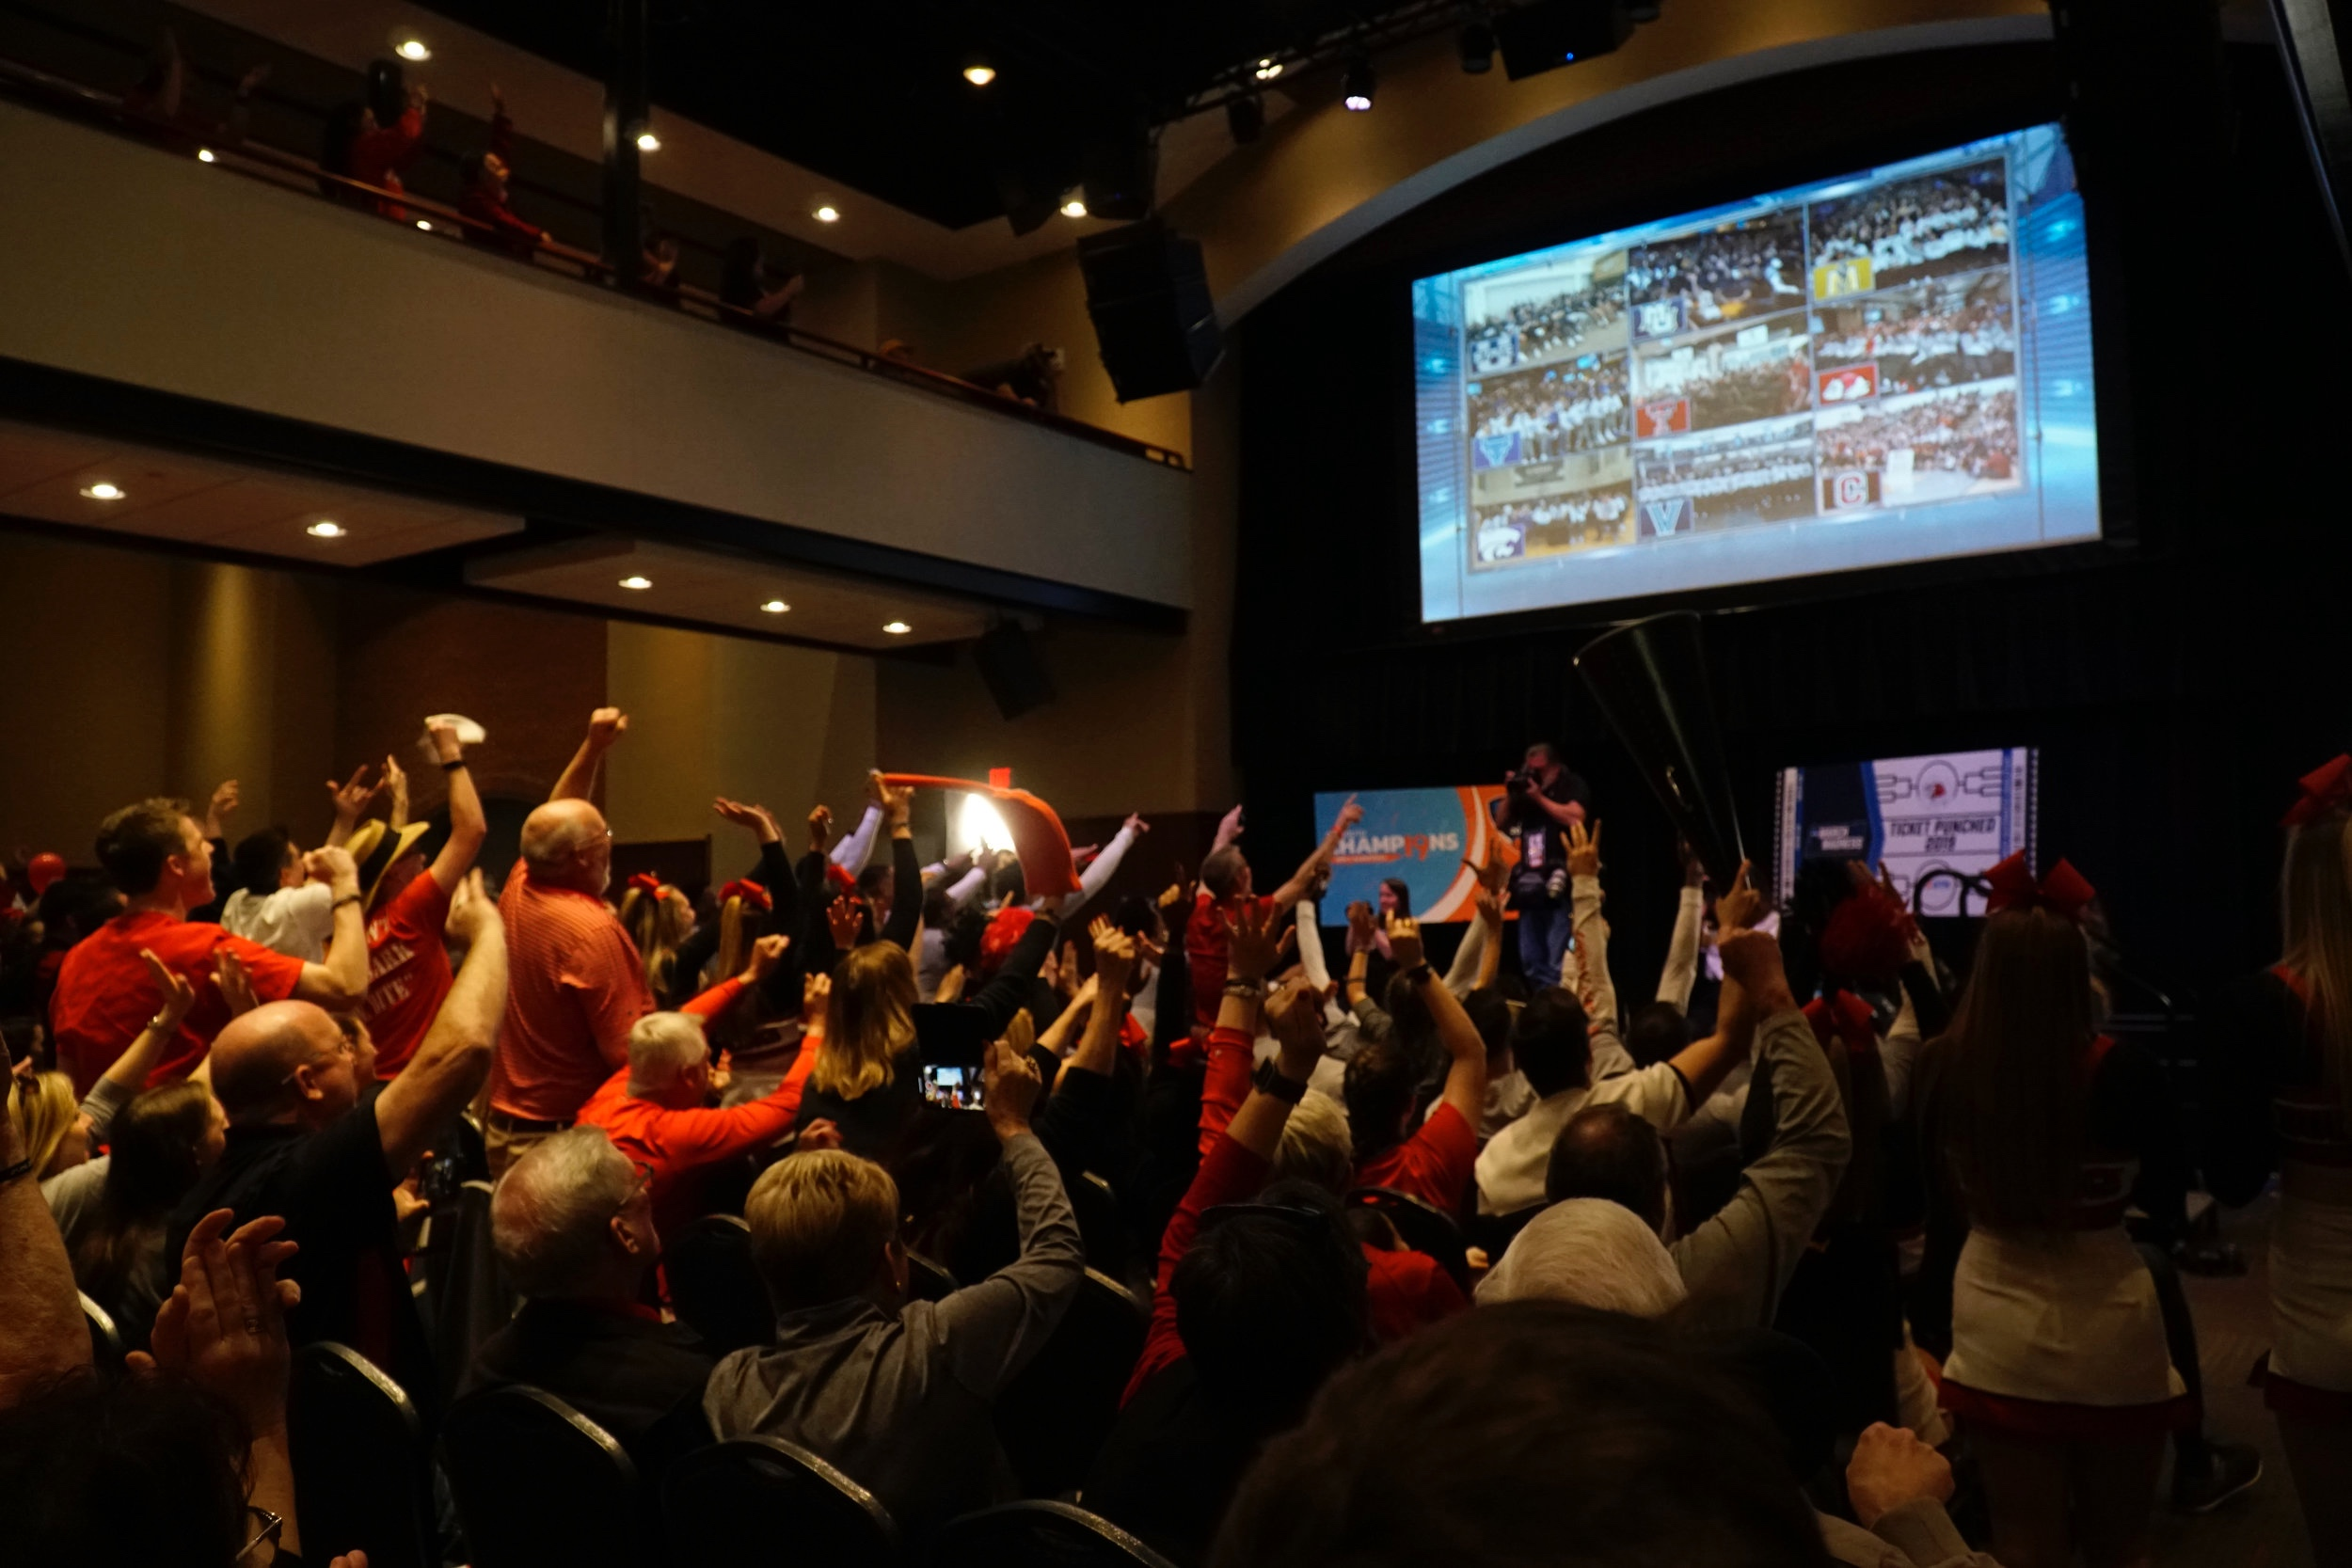 The crowd cheers as the Live Look at GWU appears on the screen.